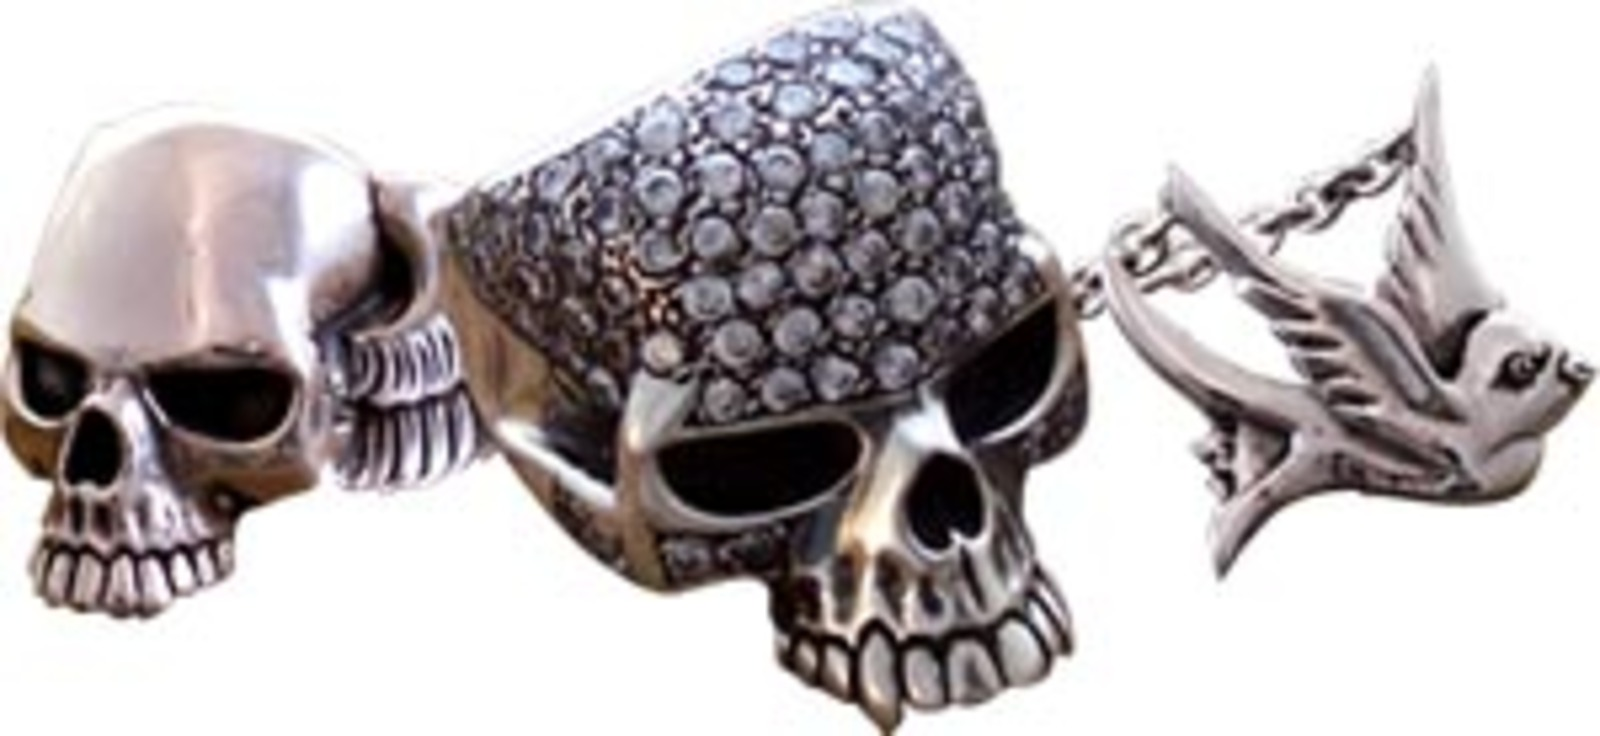 the great frog london jewelry online store cool hunting